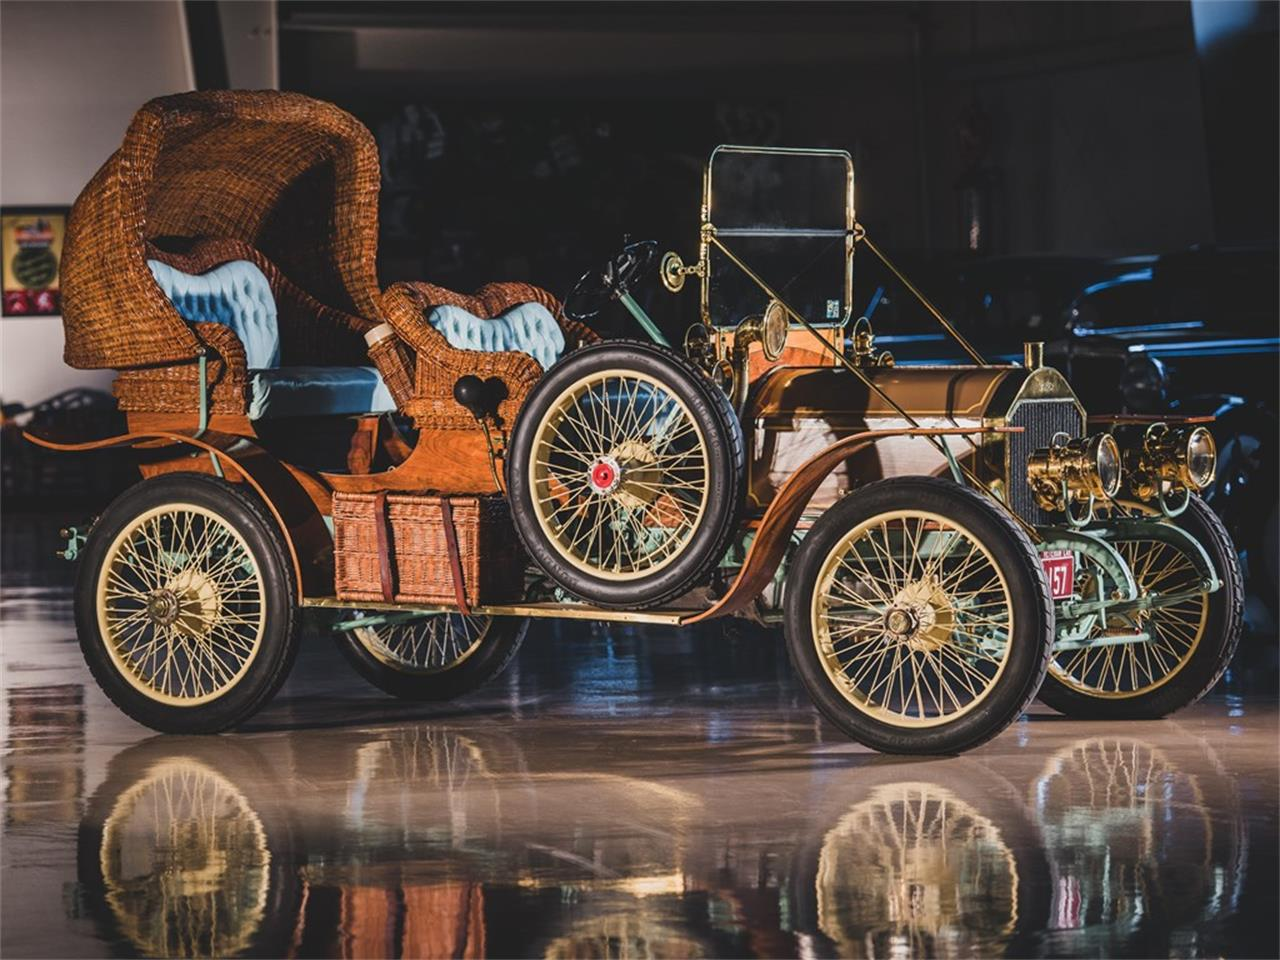 Large Picture of 1911 Napier 15 HP Victoria located in Amelia Island Florida Auction Vehicle Offered by RM Sotheby's - PGU7